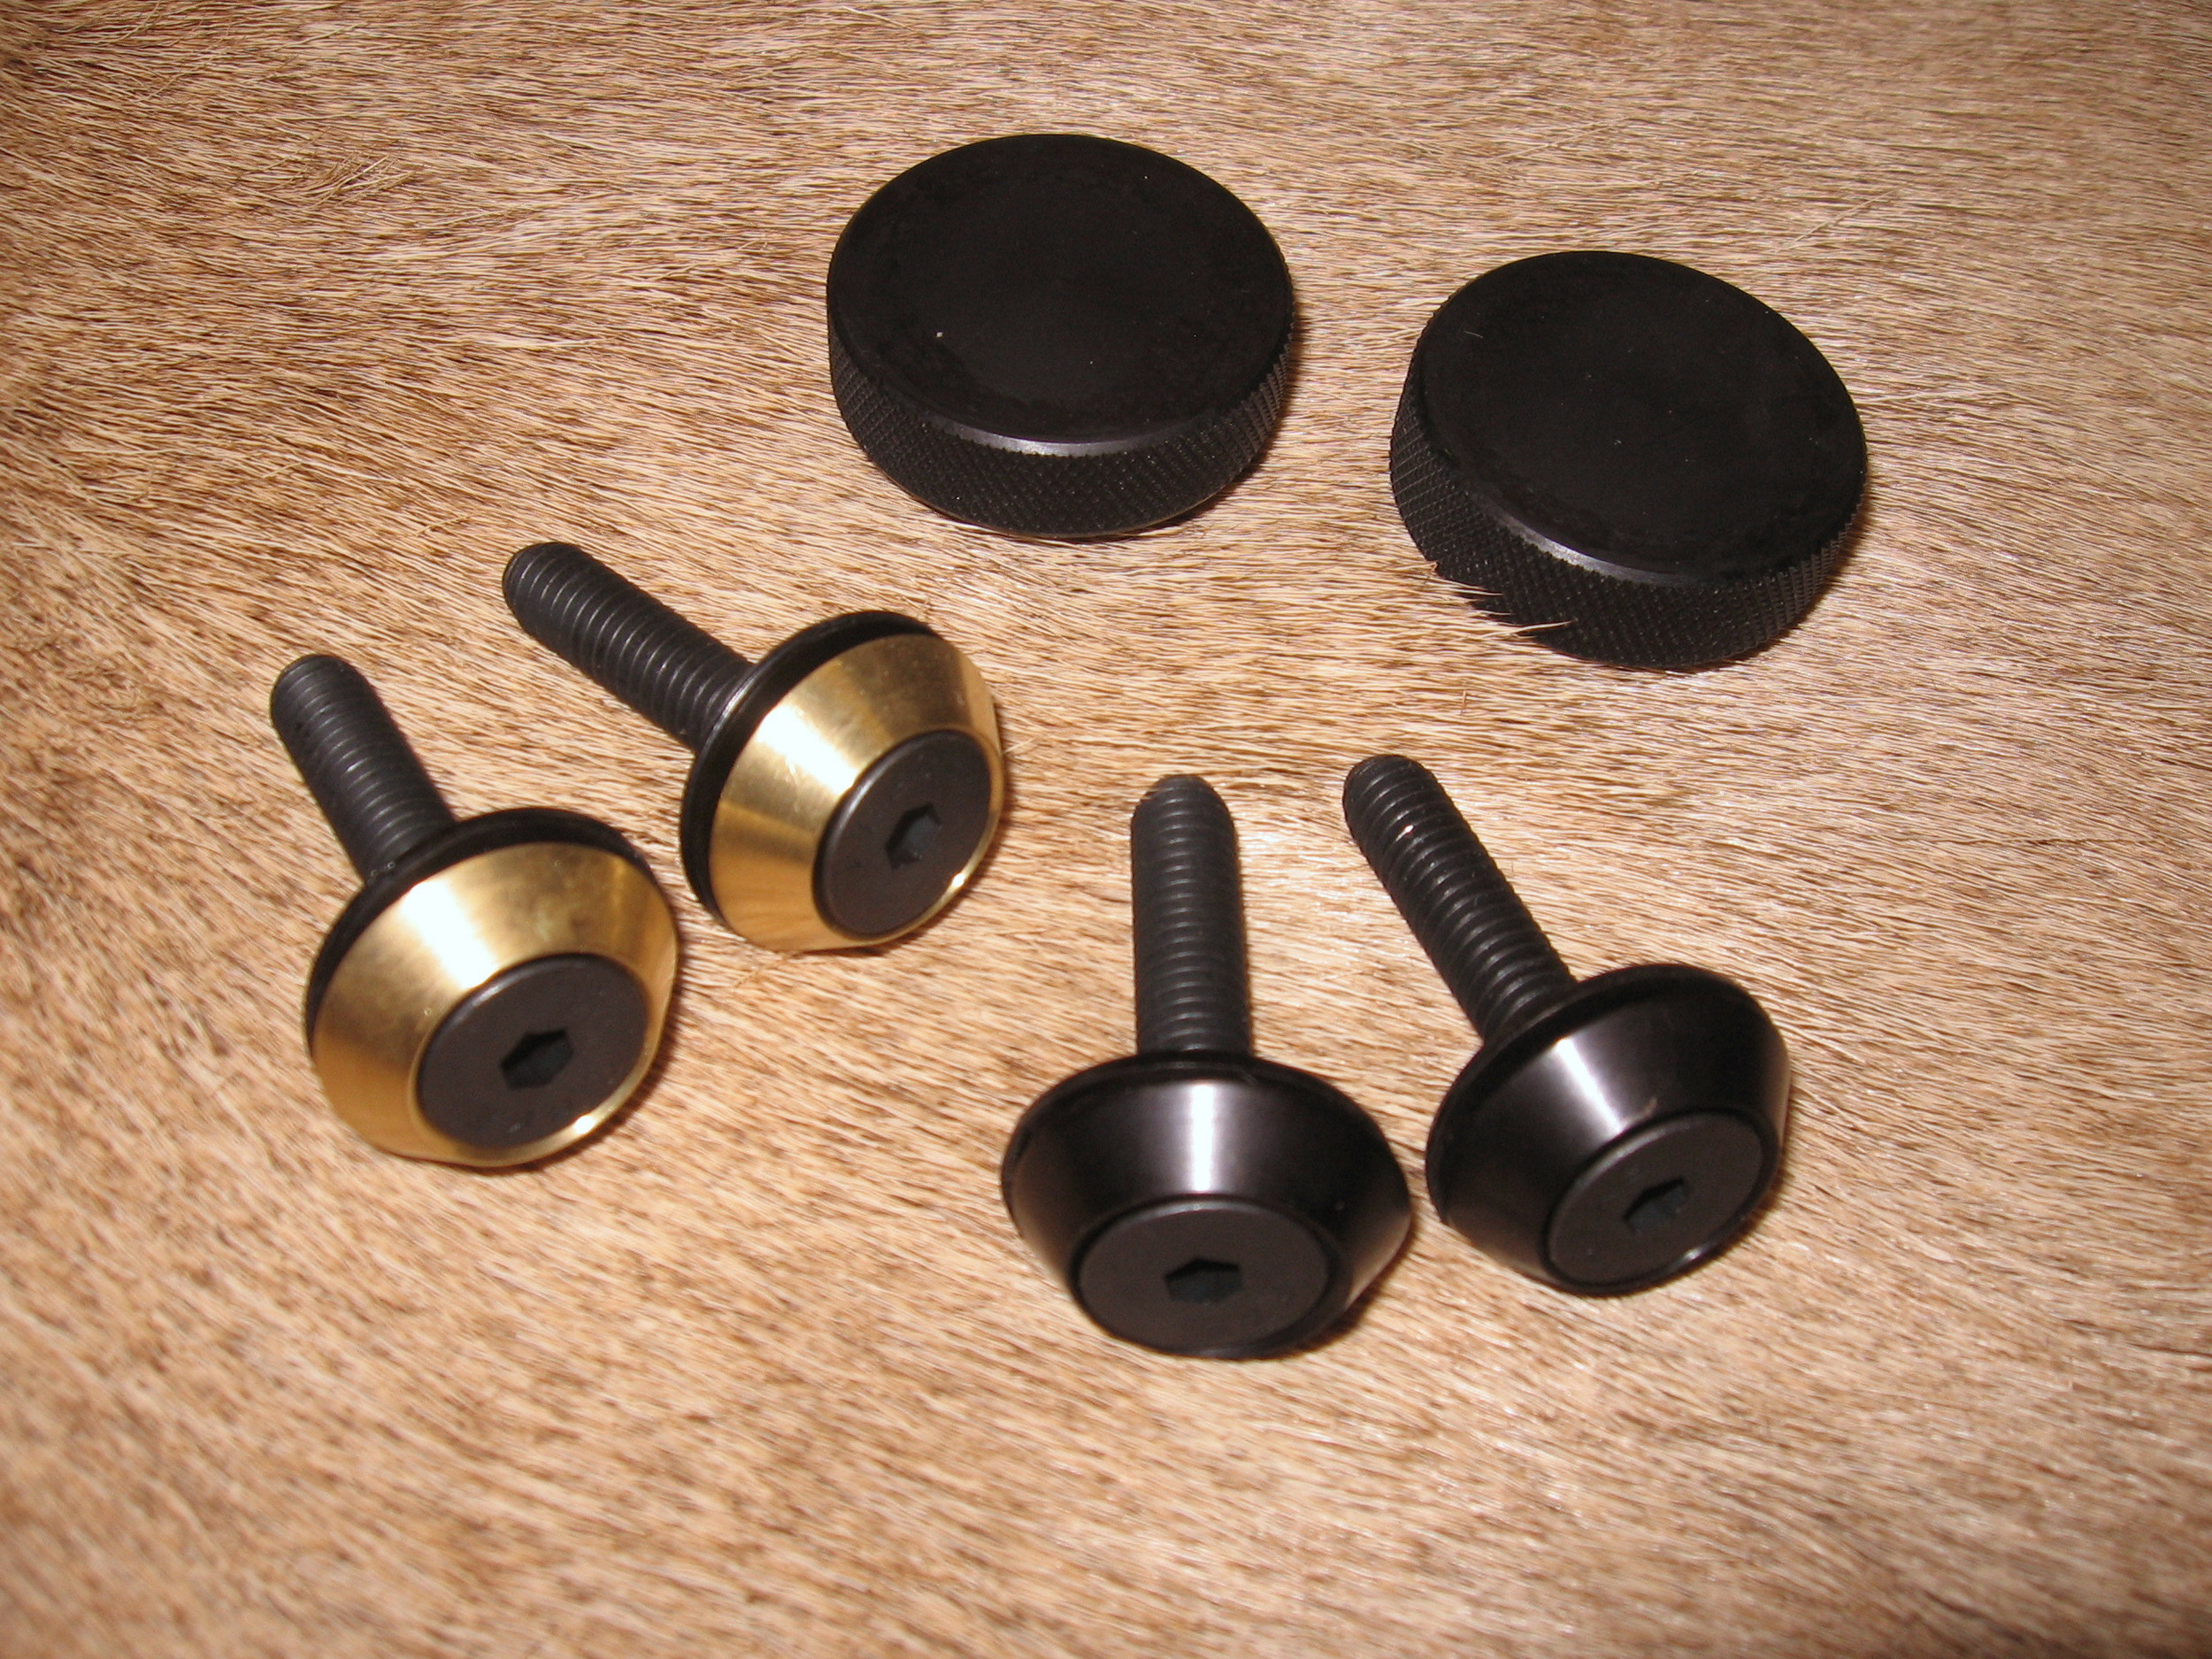 Standard Knob Attachments  Black Knurled Knob or Allen bezels available in black or brass finish